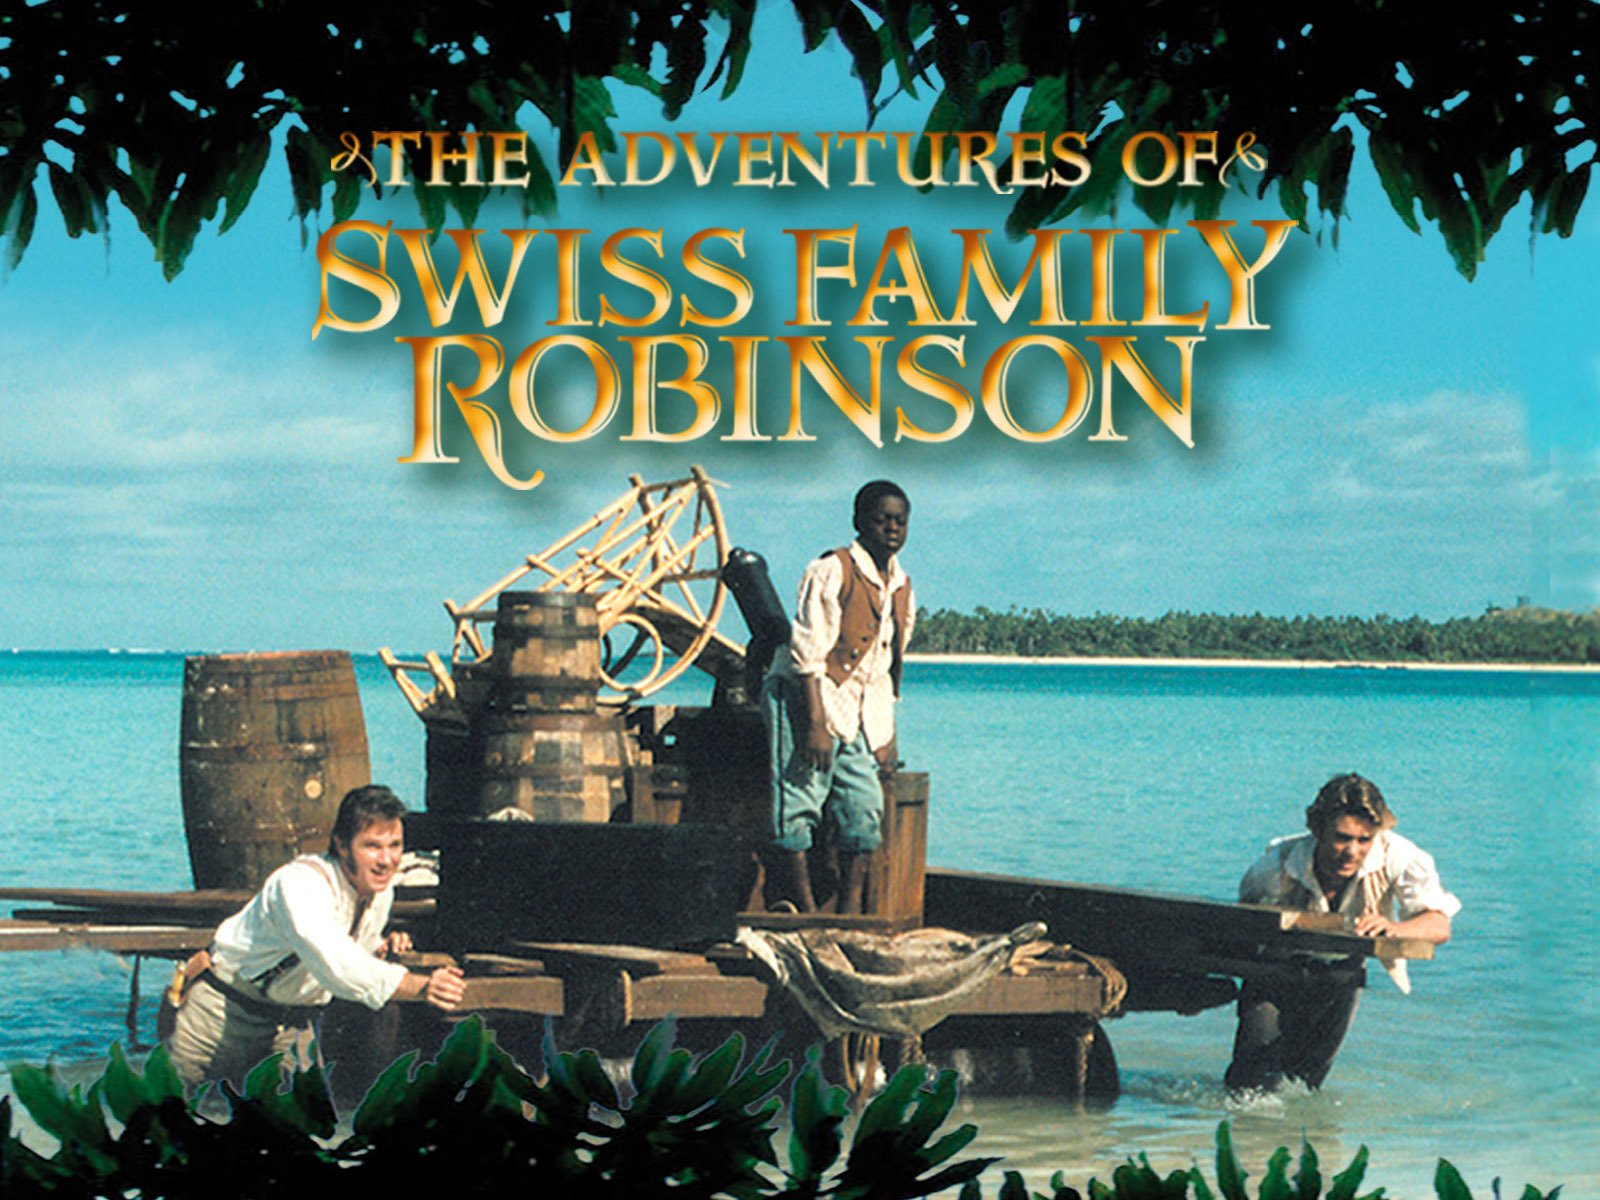 The Adventures of Swiss Family Robinson - Season 1